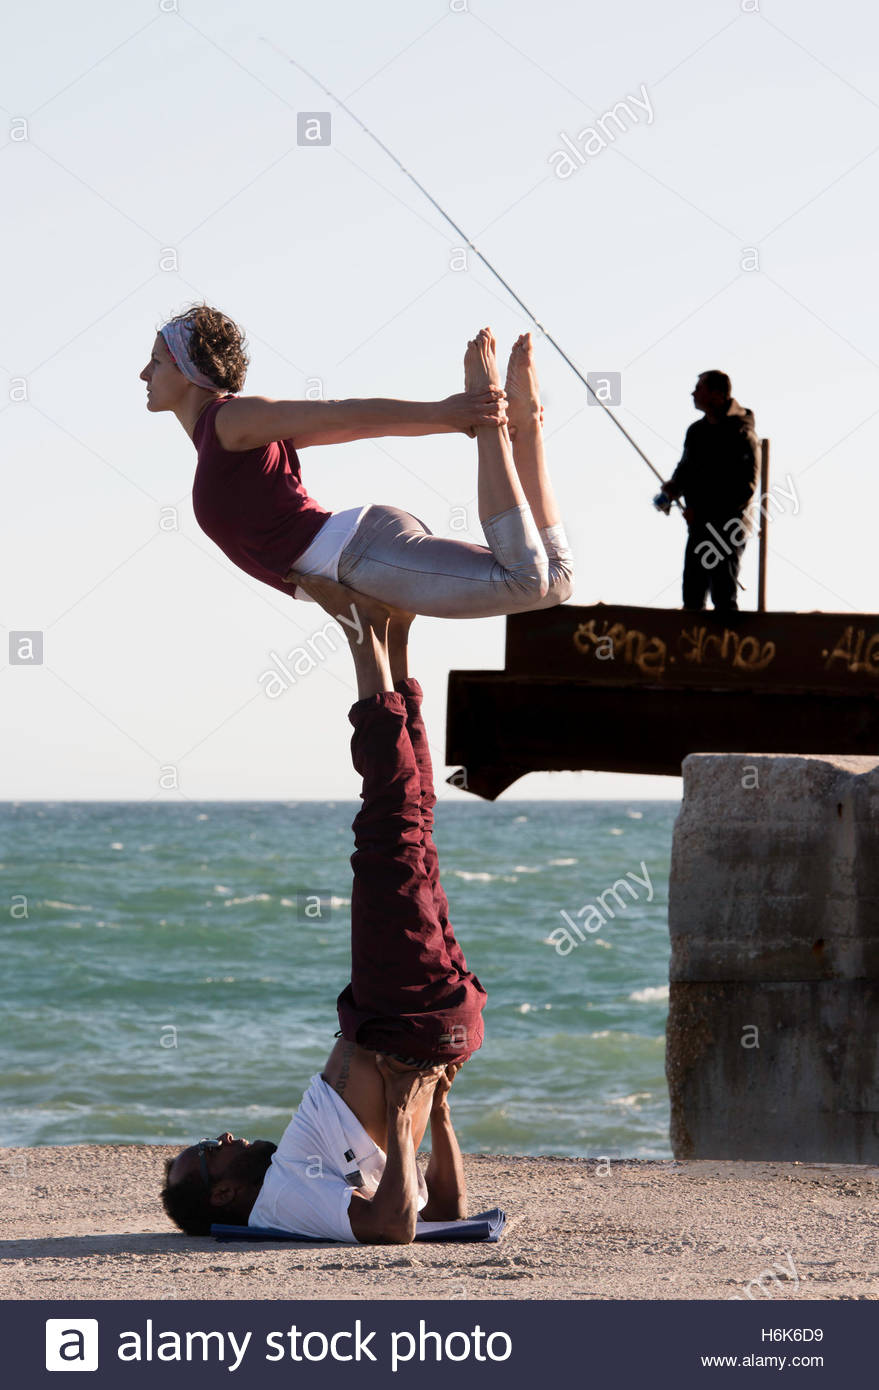 A COUPLE PERFORMS POSSESSION OF ACROYOGA NEXT TO A HARBOR - Stock Image